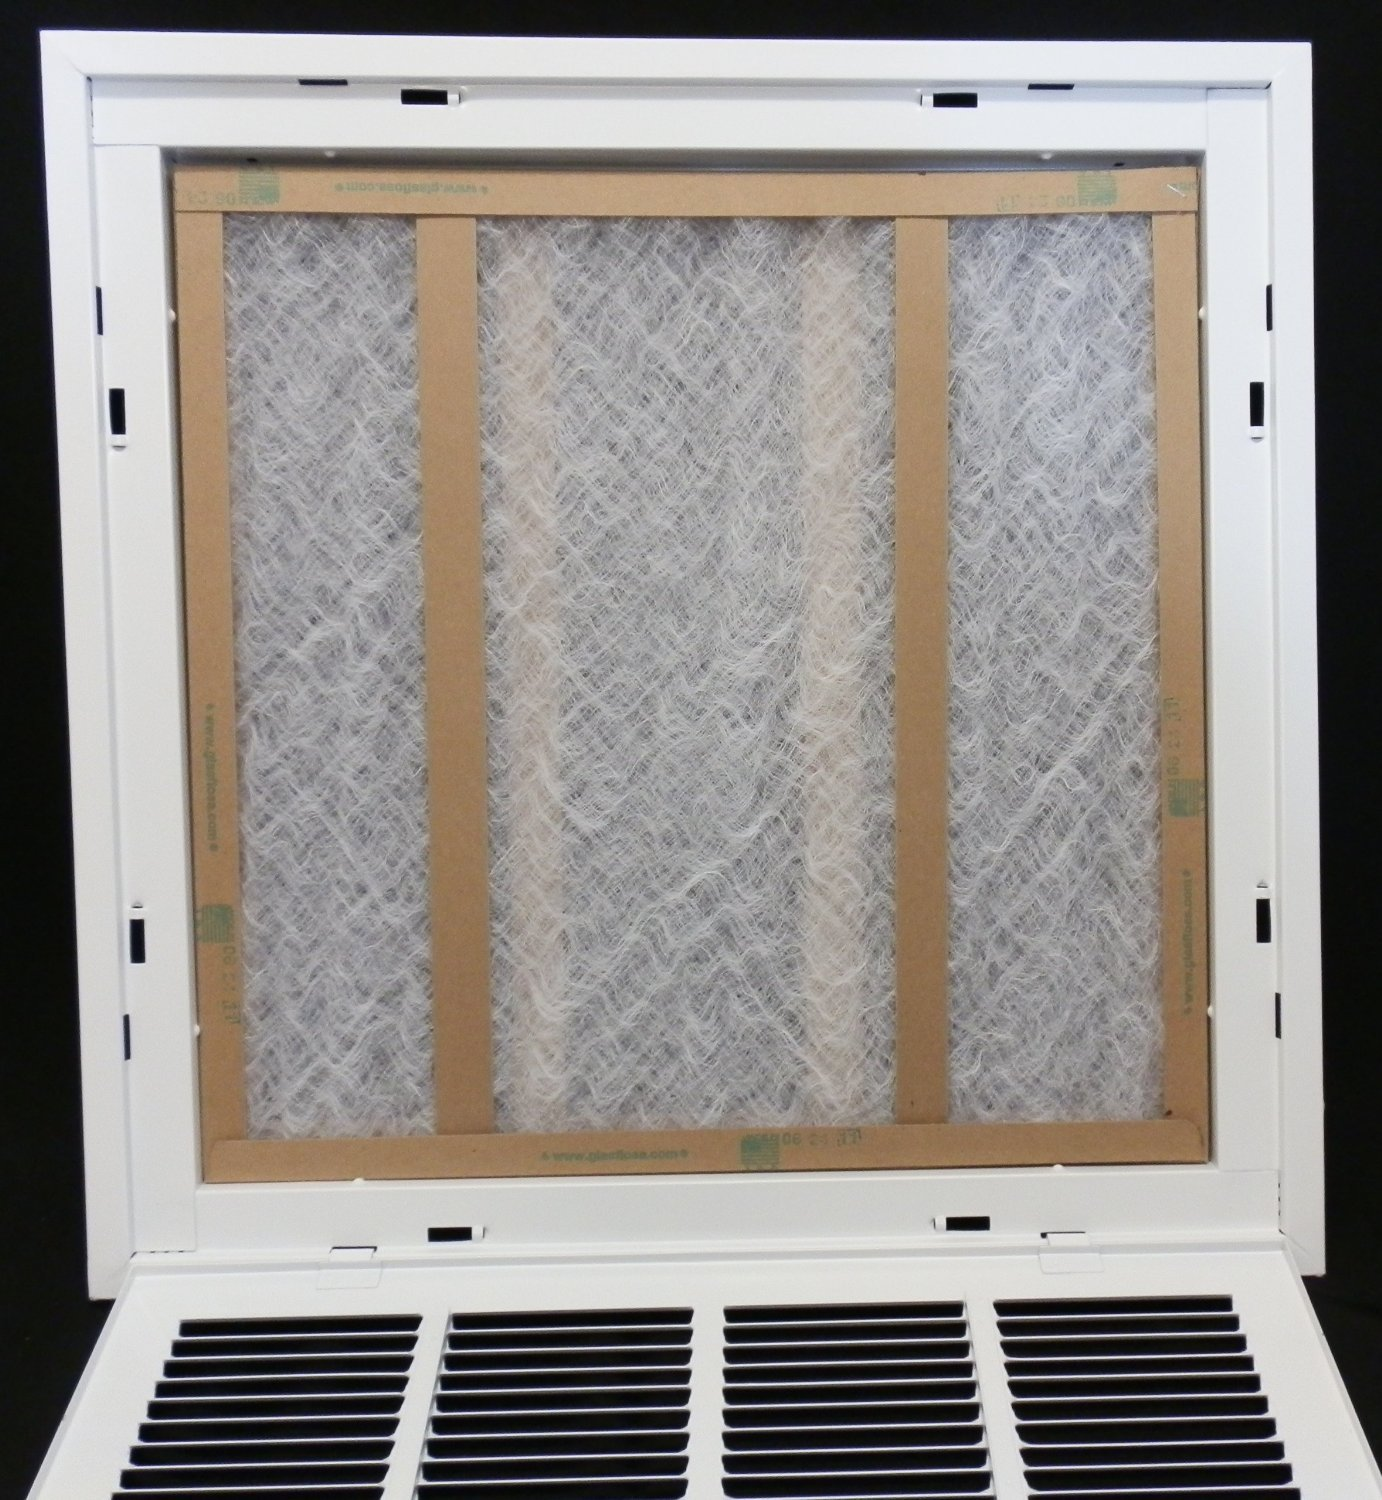 30'' X 14 Steel Return Air Filter Grille for 1'' Filter - Removable Face/Door - HVAC DUCT COVER - Flat Stamped Face - White [Outer Dimensions: 32.5''w X 16.5''h] by HVAC Premium (Image #9)